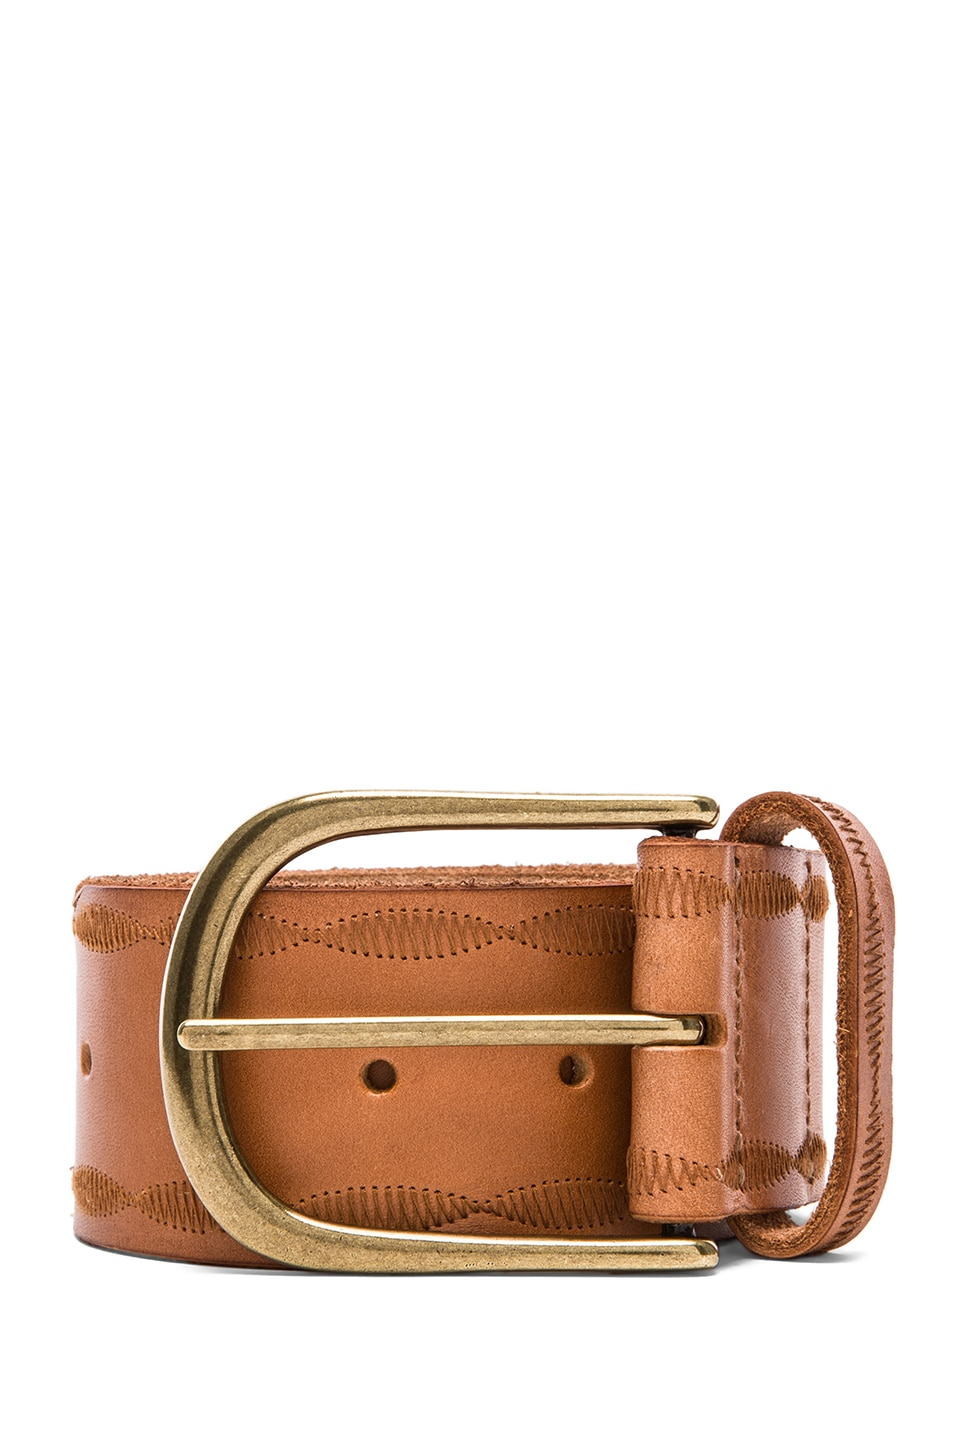 Linea Pelle Jean Belt in Natural